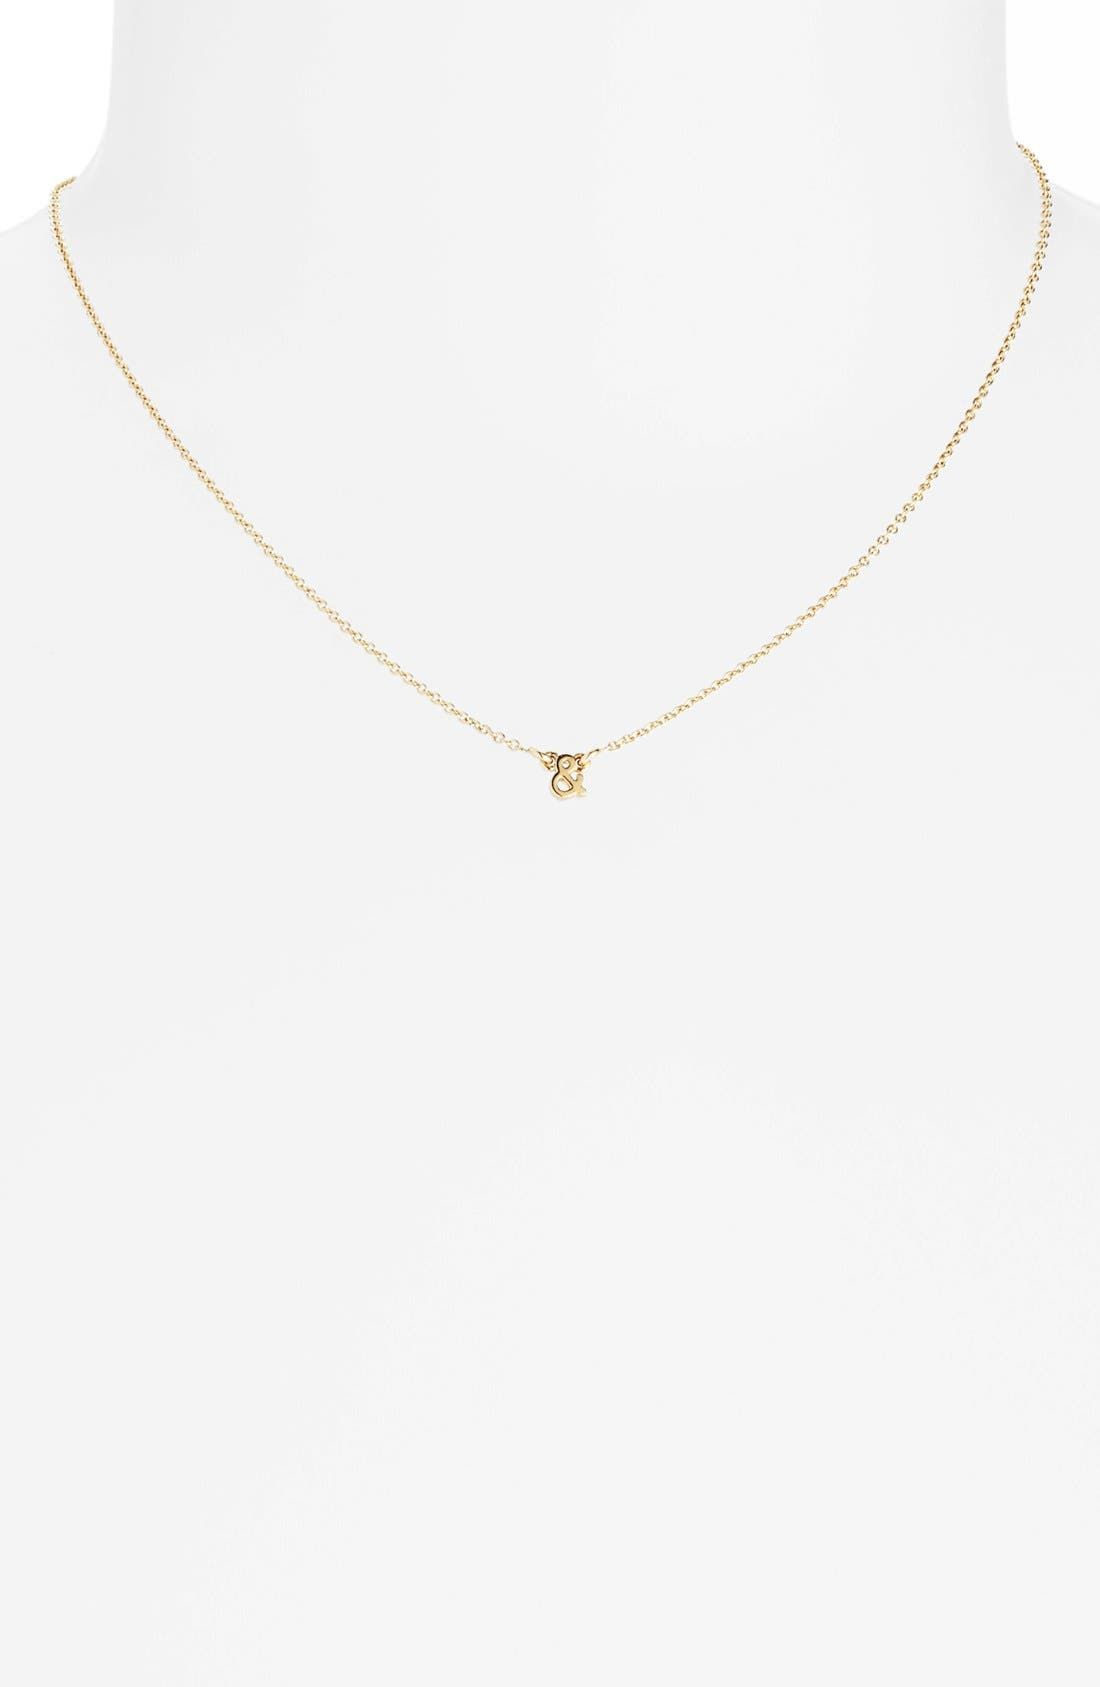 Main Image - kate spade new york 'say yes' ampersand pendant necklace